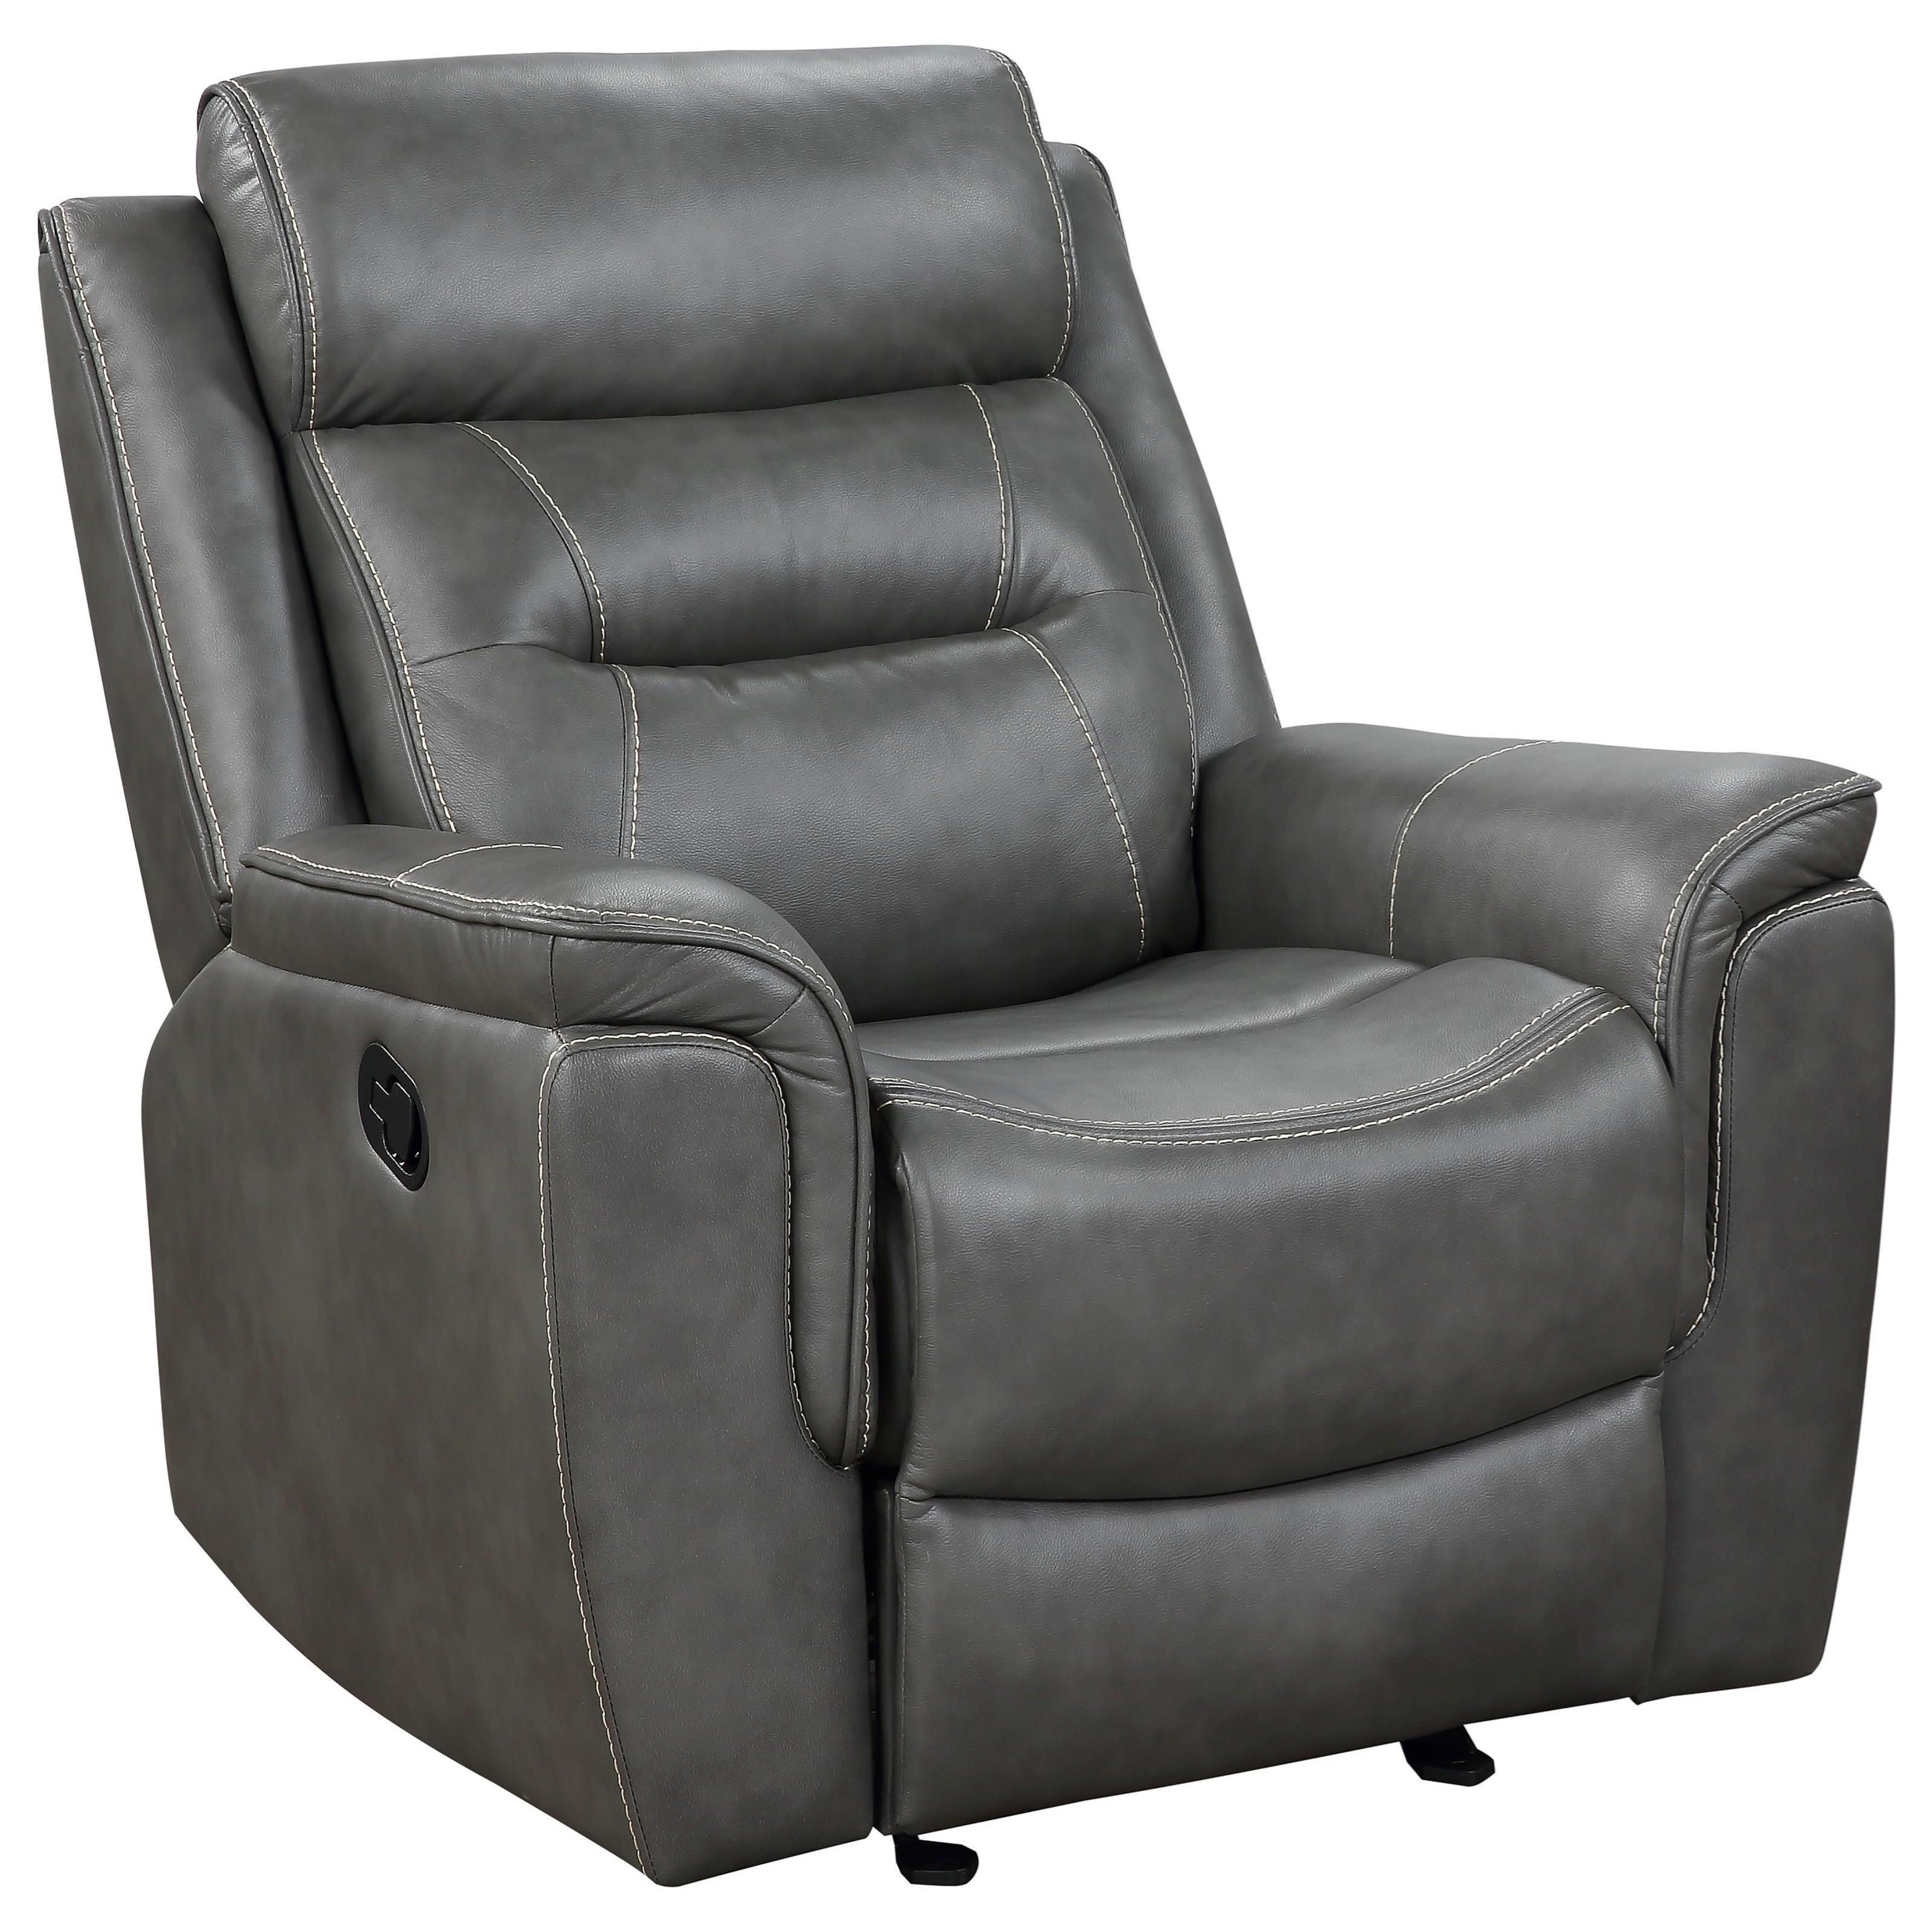 Nash Manual Glider Recliner by Steve Silver at Northeast Factory Direct